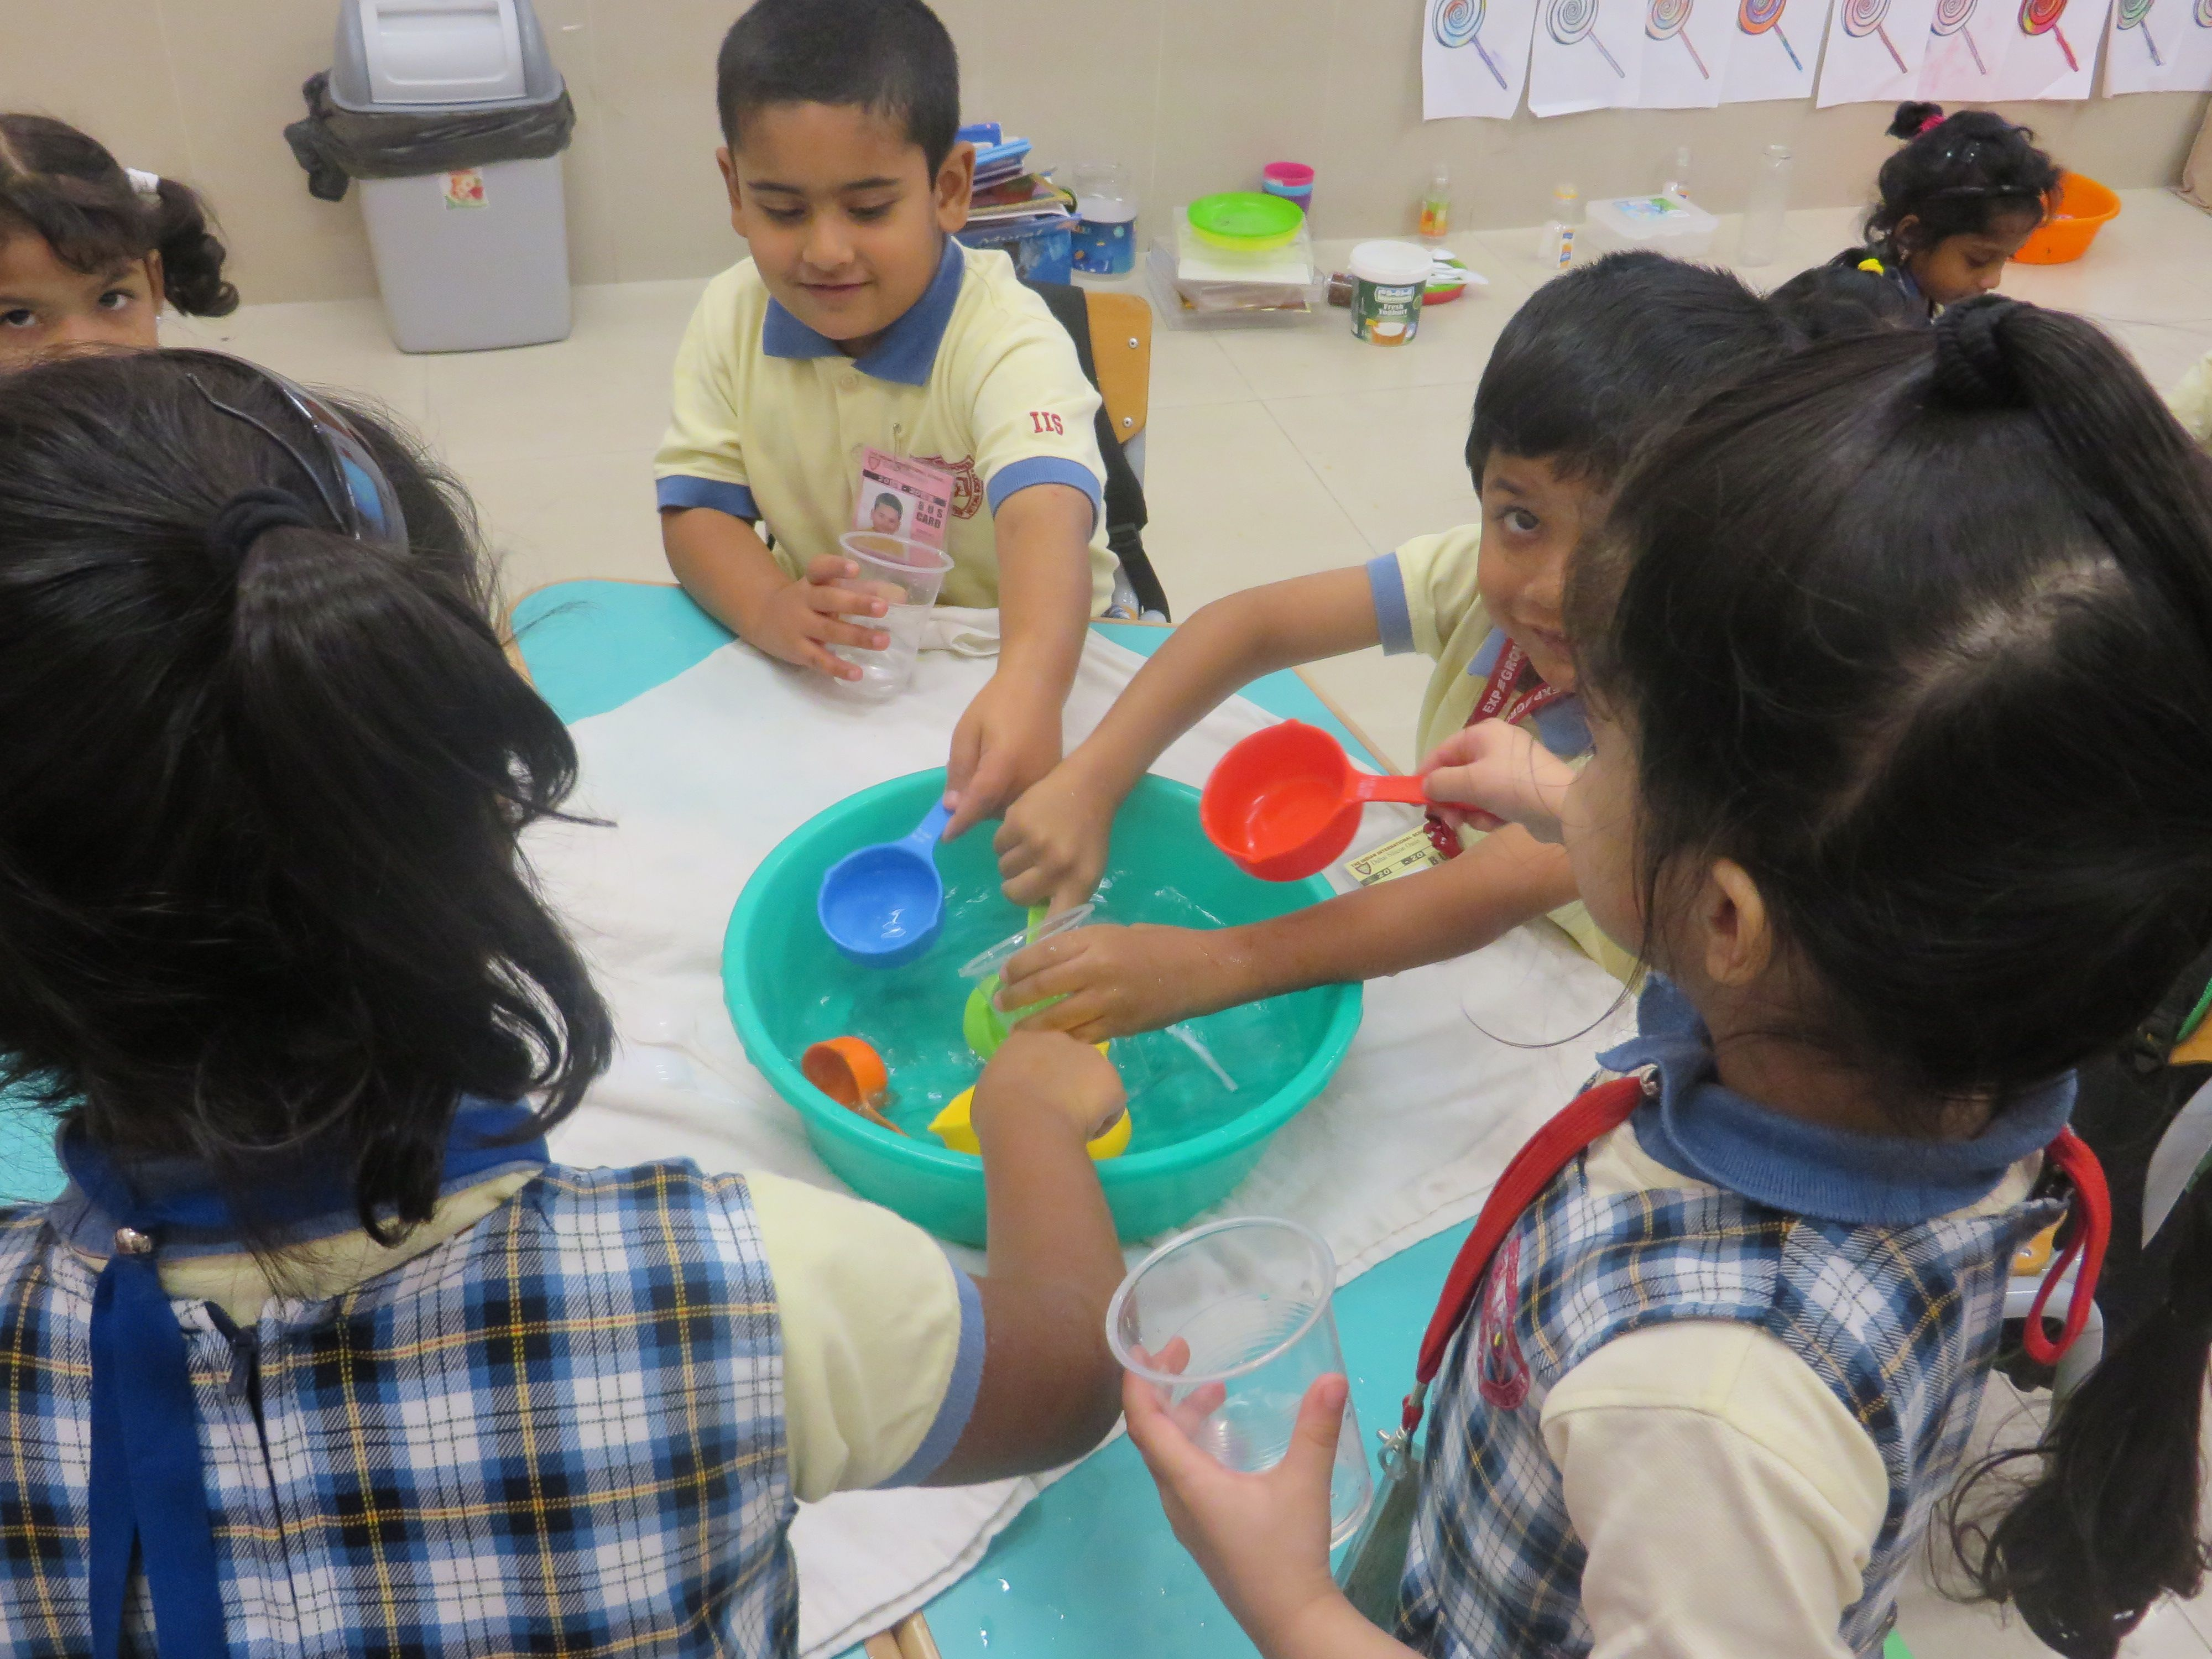 These Wonderful Kids At Iis Are Engaged In The Full And Empty Activity Using Comparative Words